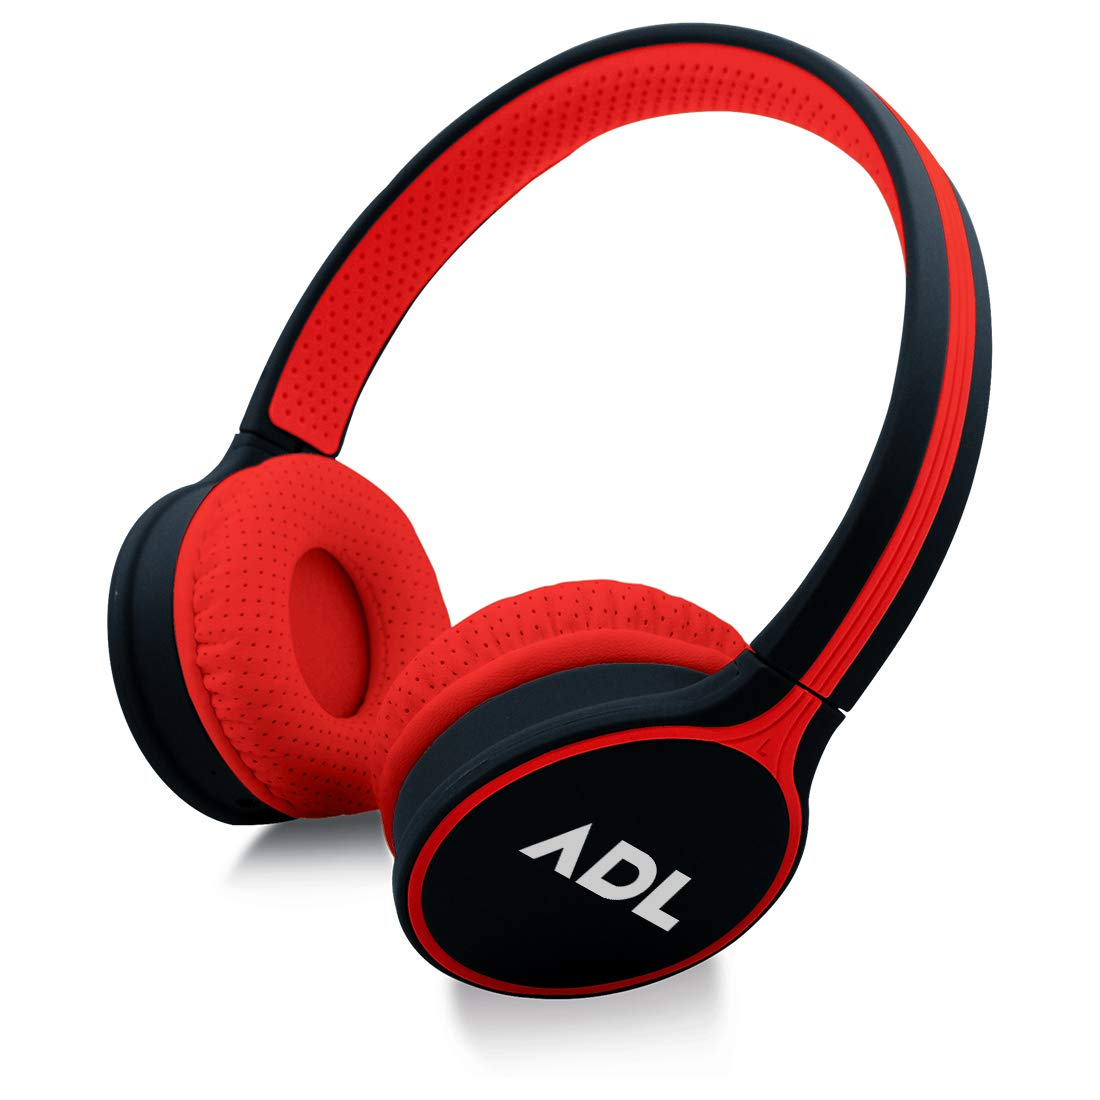 ADL Discover C180 Wireless Bluetooth Headphones With Mic/10